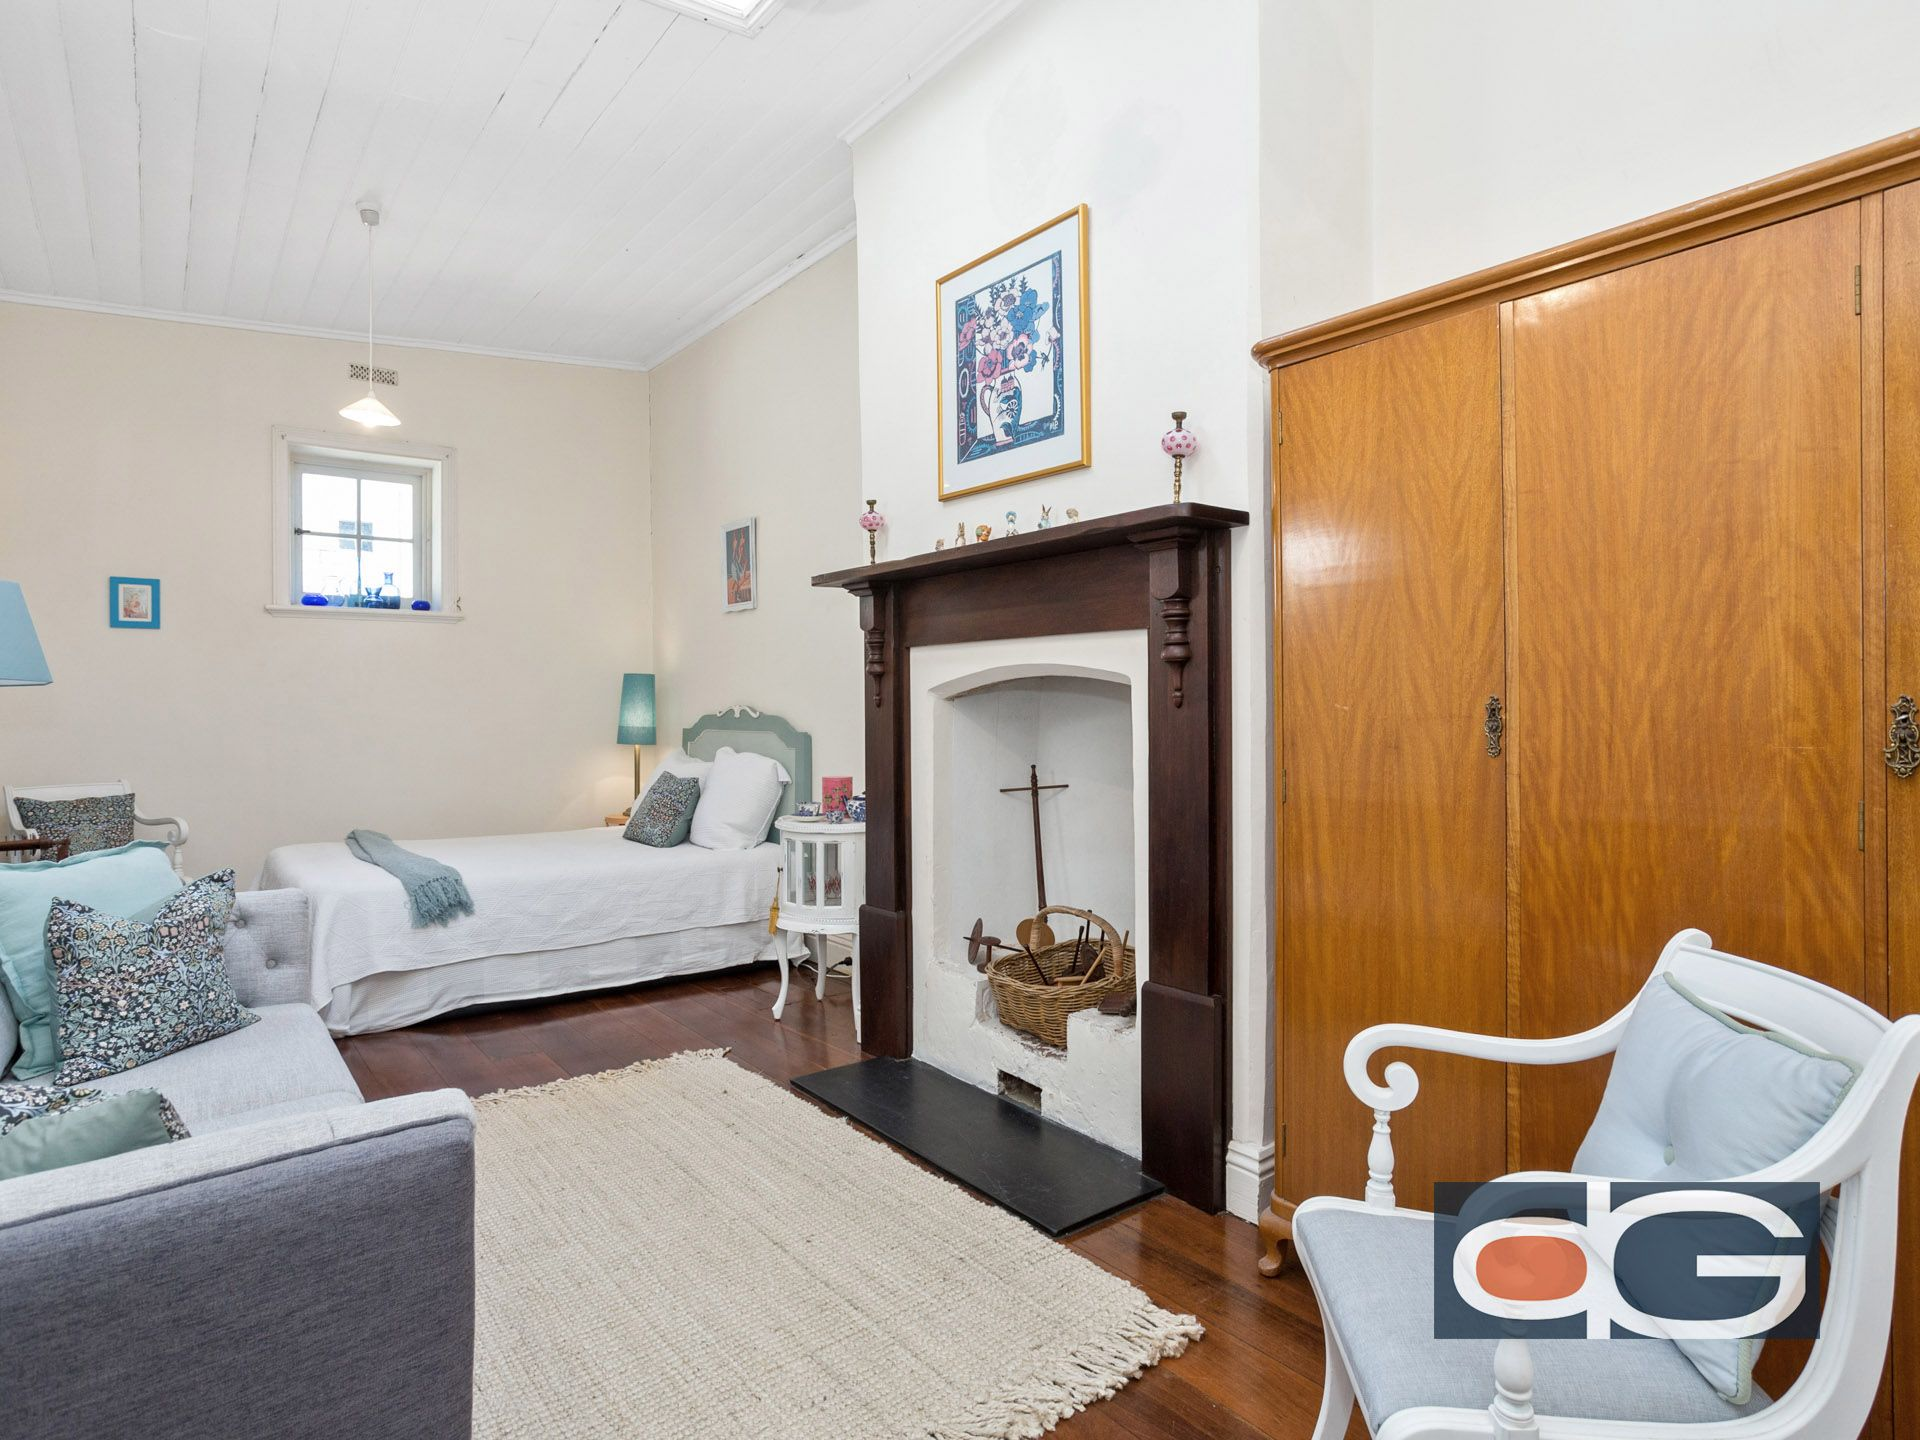 13-15 Thompson Road, North Fremantle